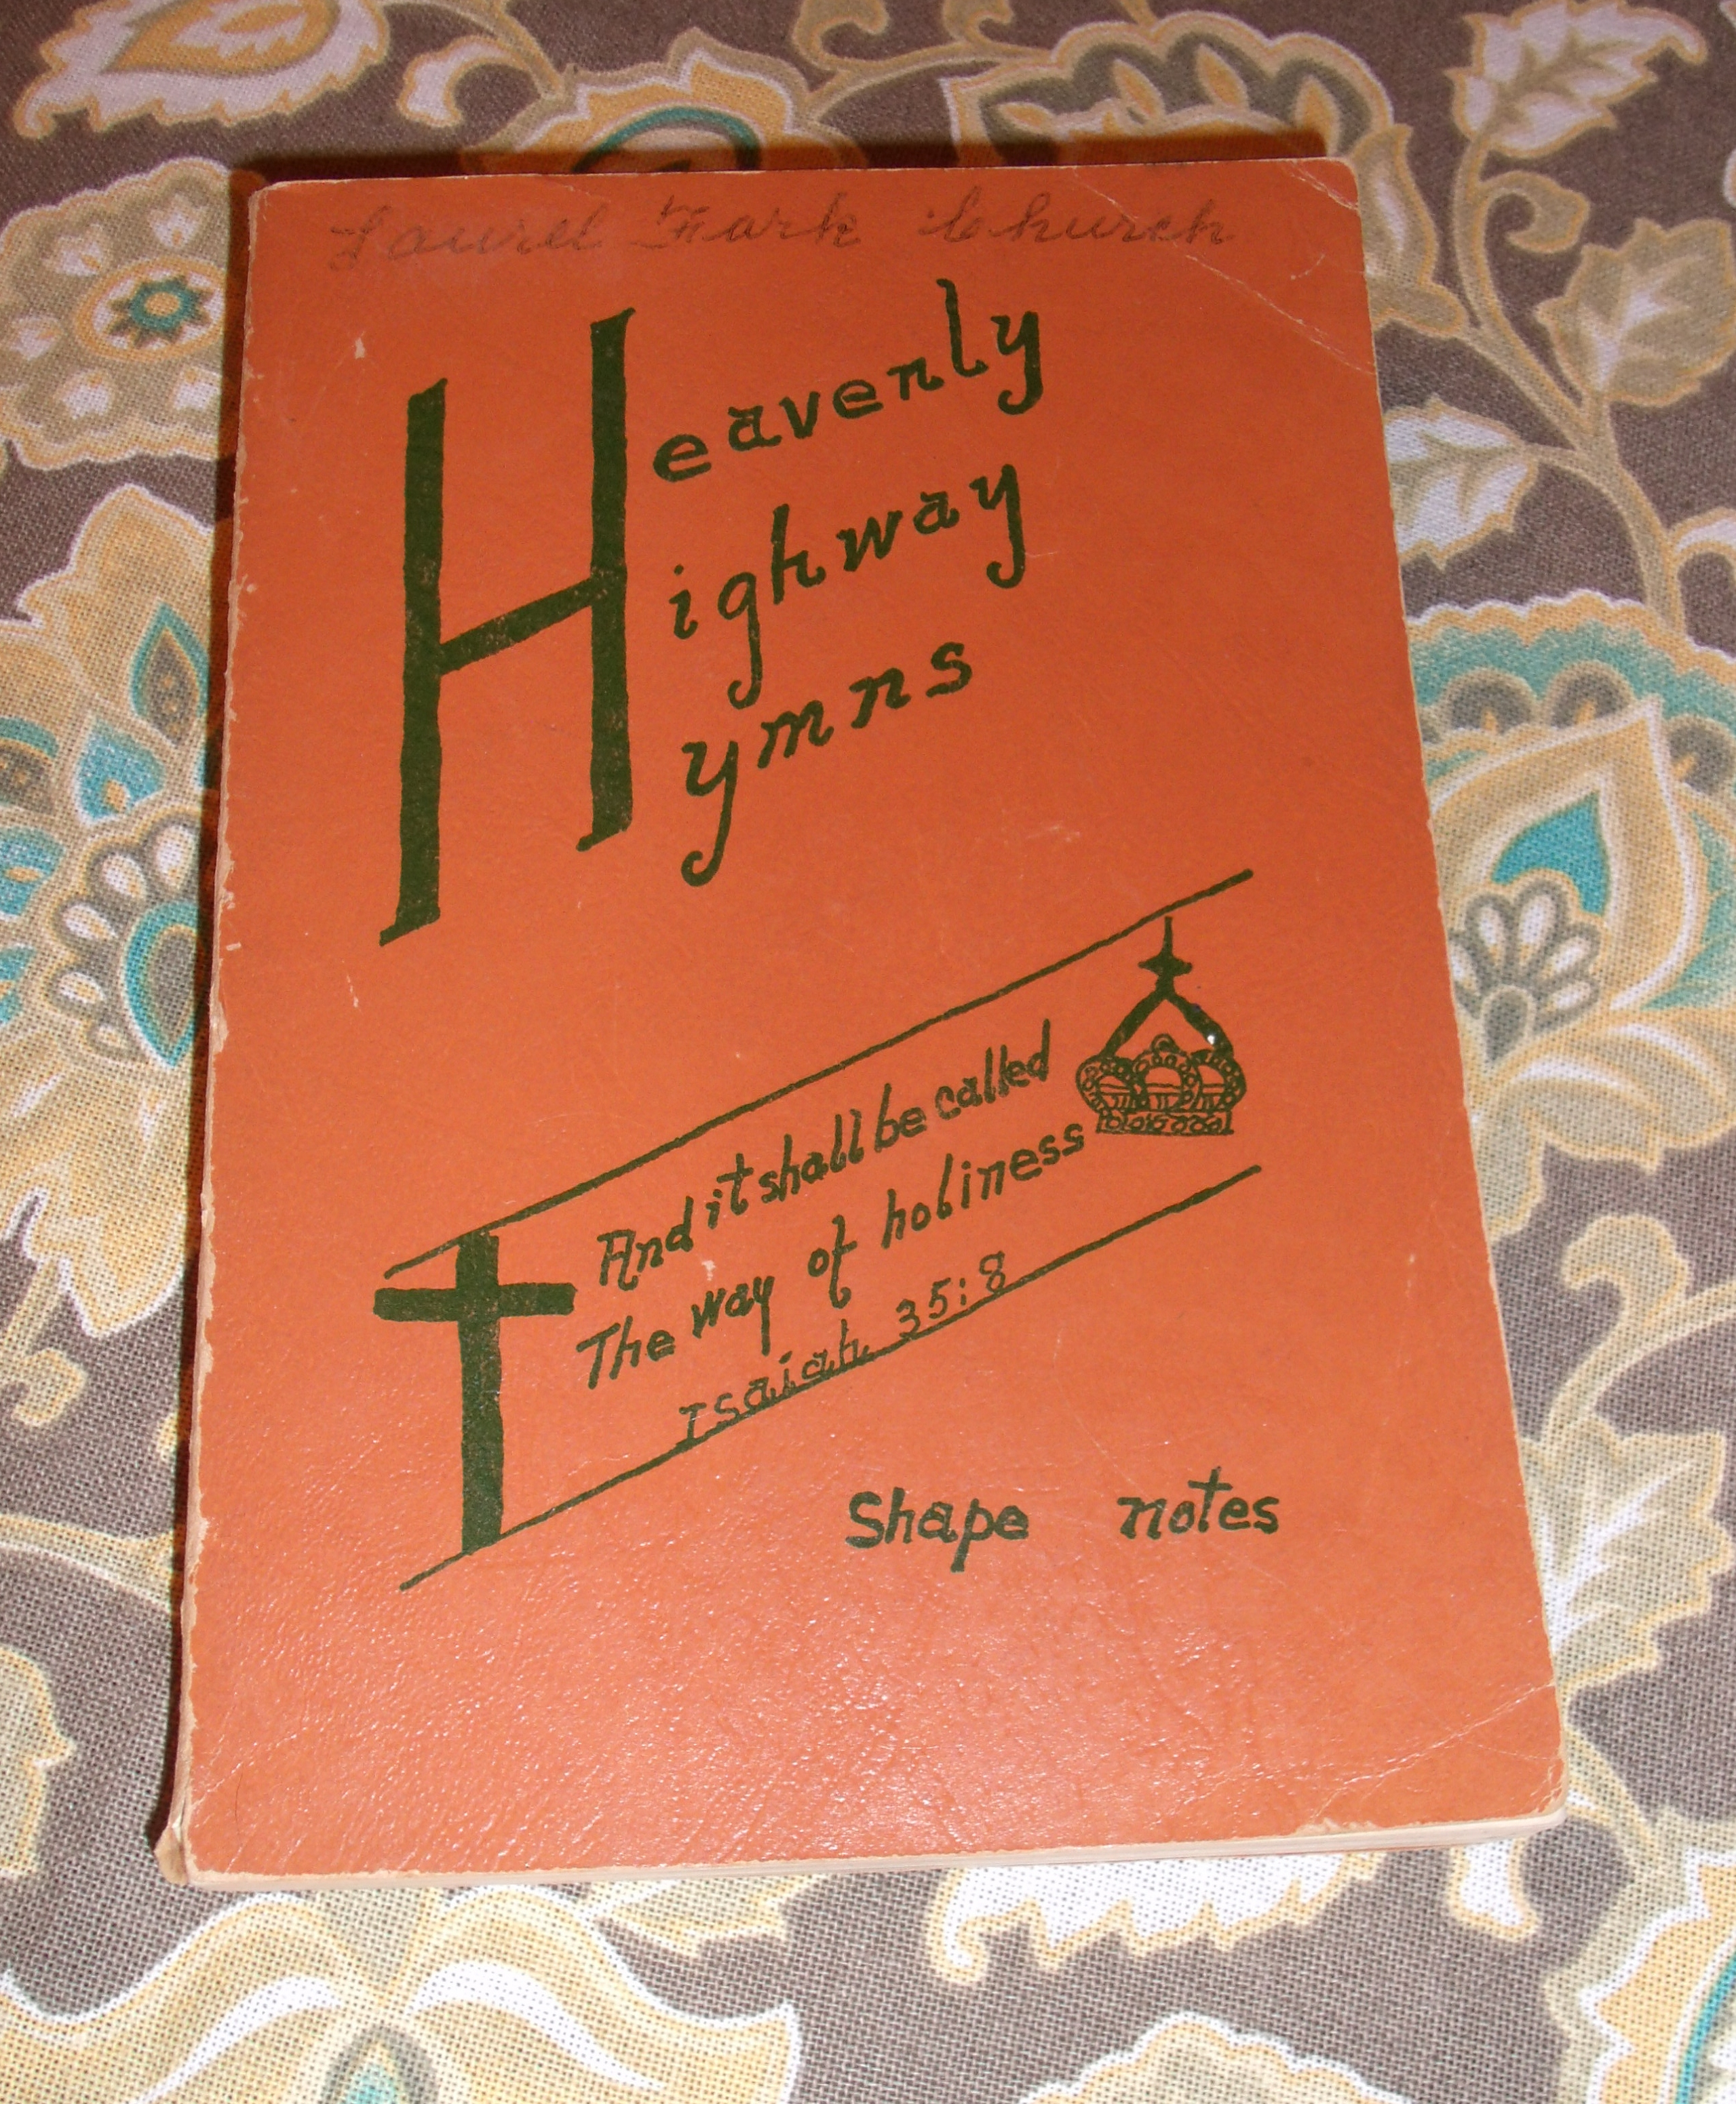 Heavenly highway hymns: stamps/baxter: 9780000013712: amazon. Com.